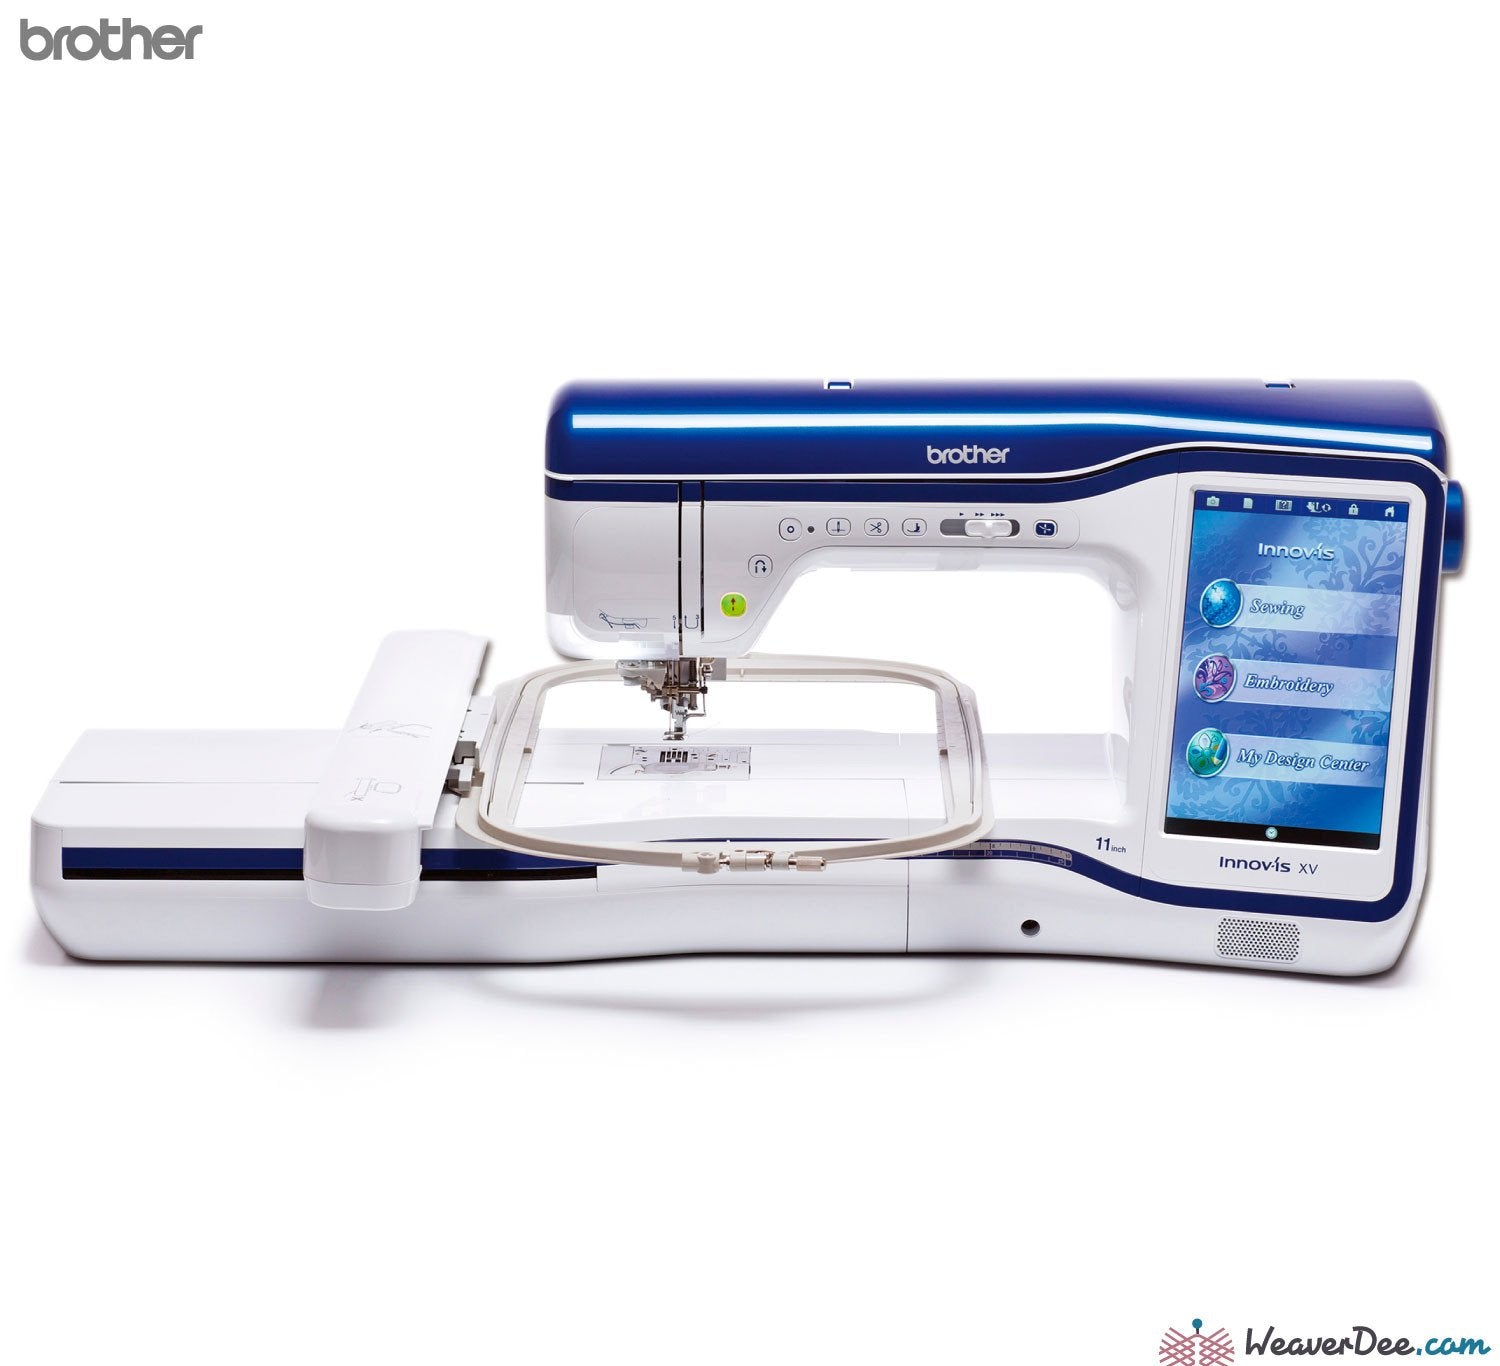 Brother - Brother Innov-is XV Sewing & Embroidery Machine - WeaverDee.com Sewing & Crafts - 1